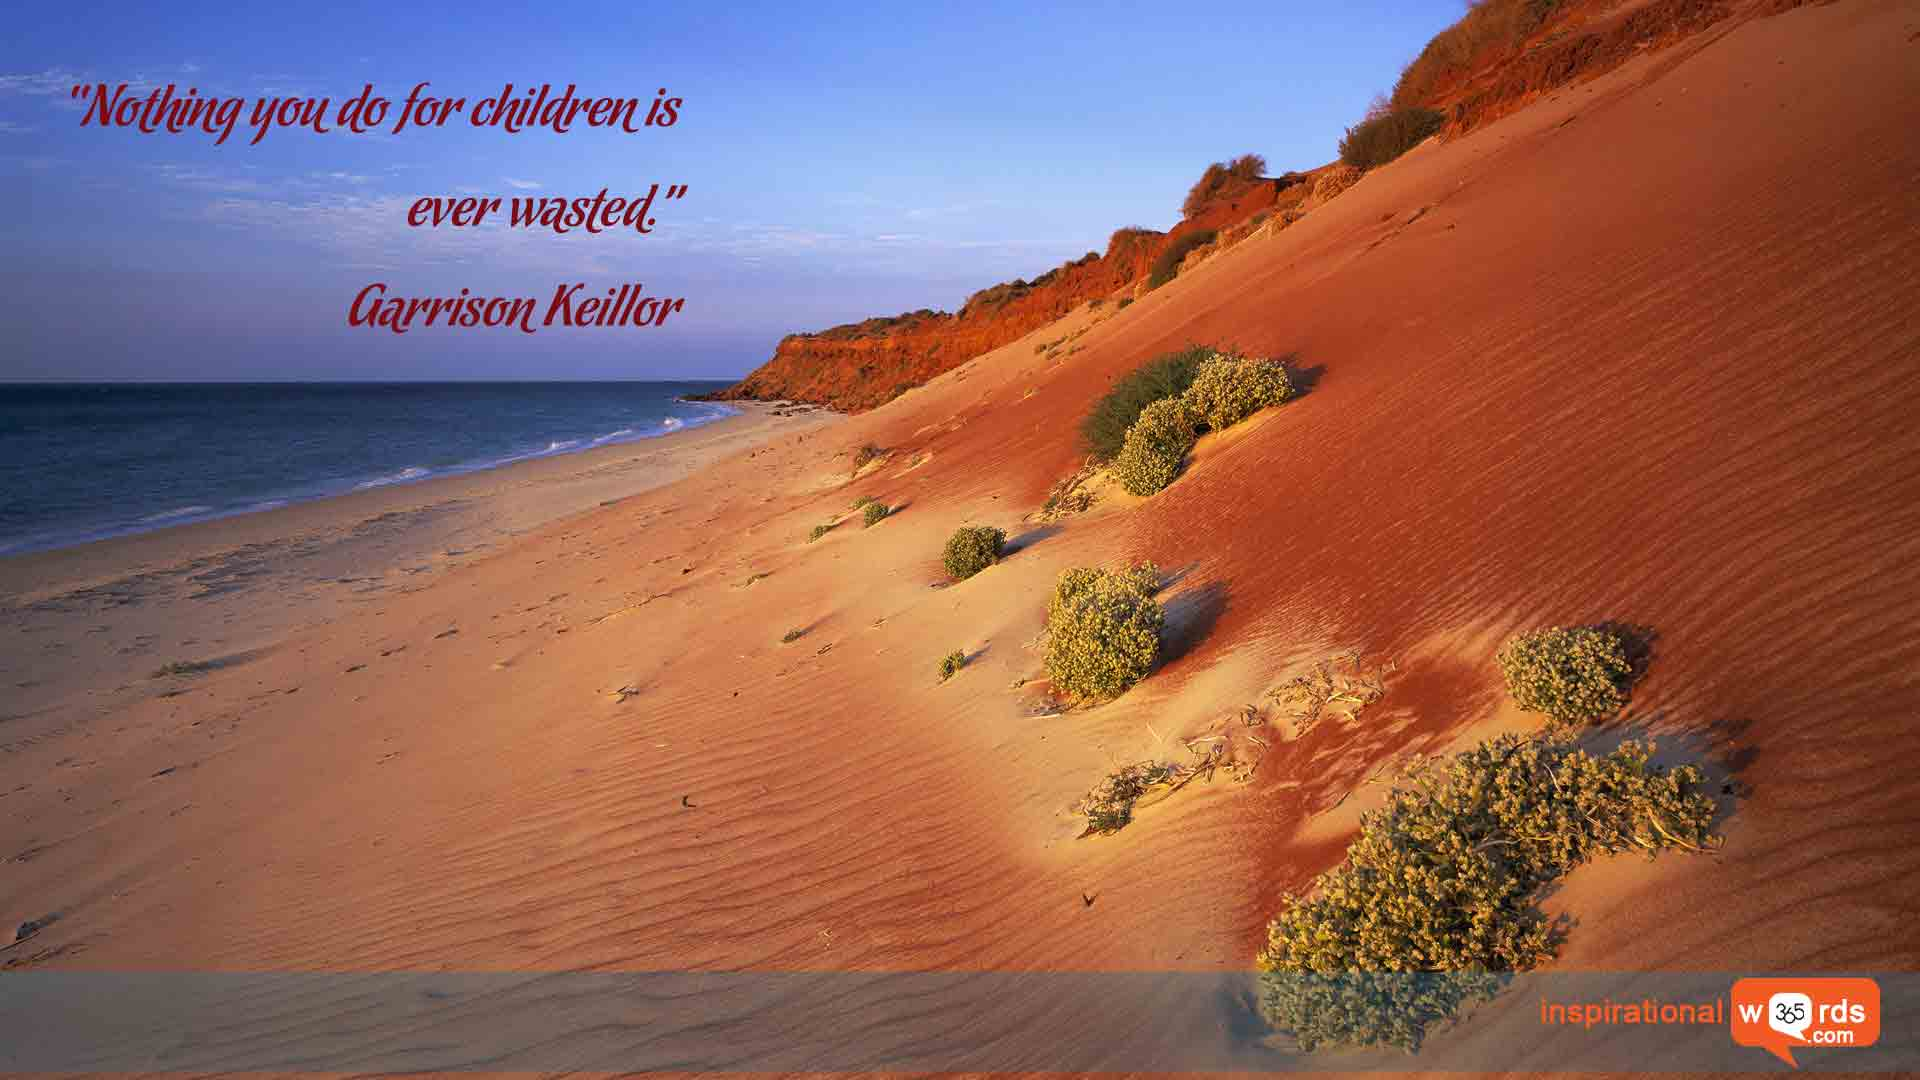 Inspirational Wallpaper Quote by Garrison Keillor